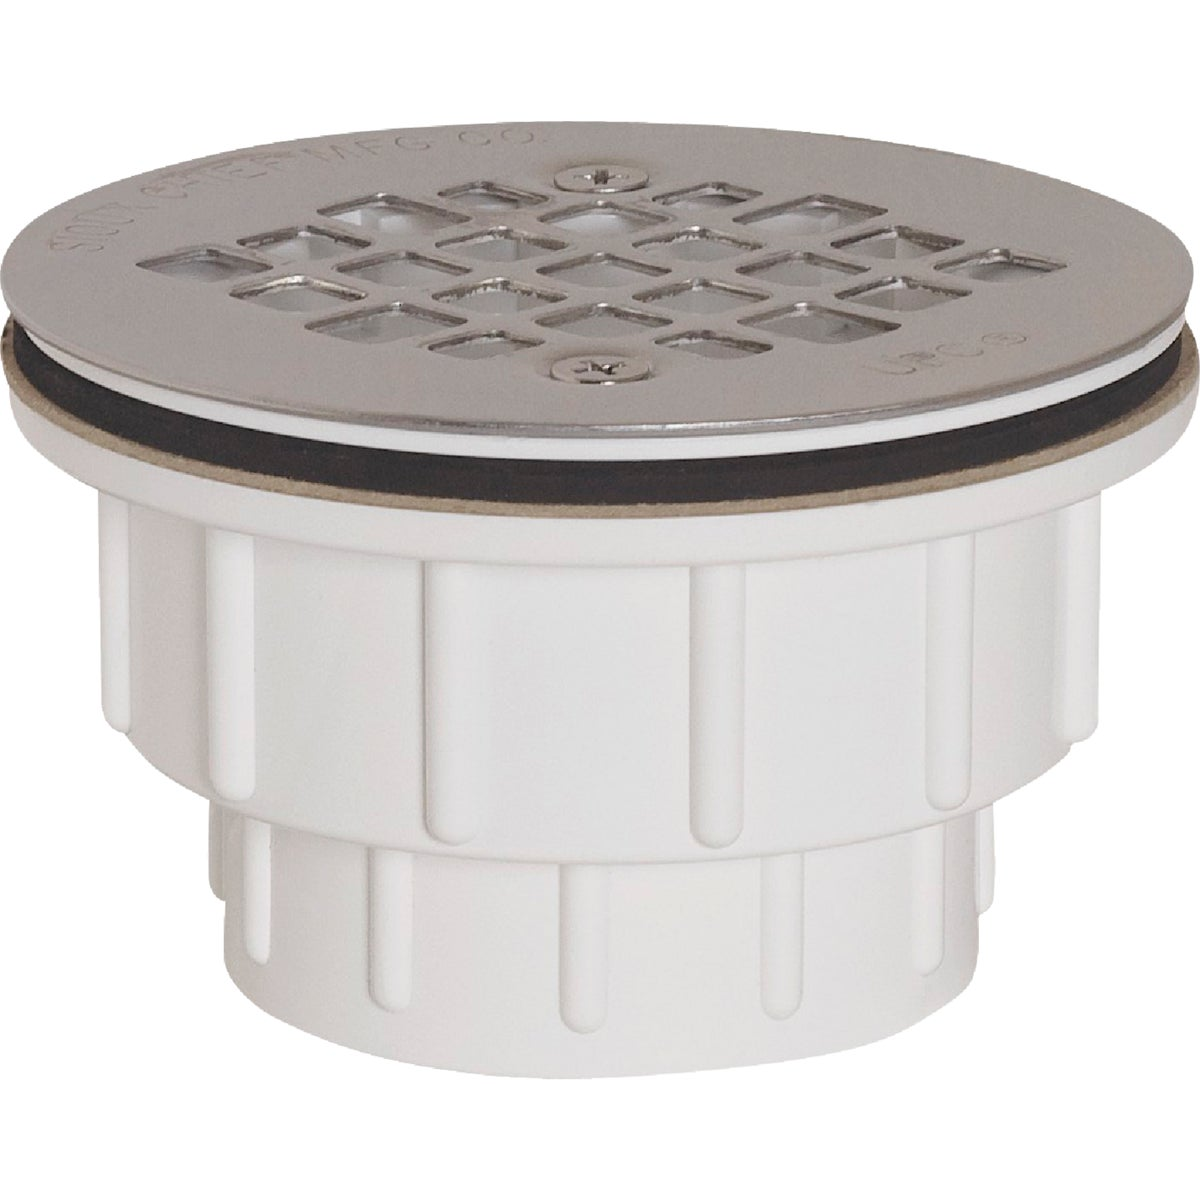 SOLV PVC SHOWER DRAIN - 825-2PPK by Sioux Chief Mfg